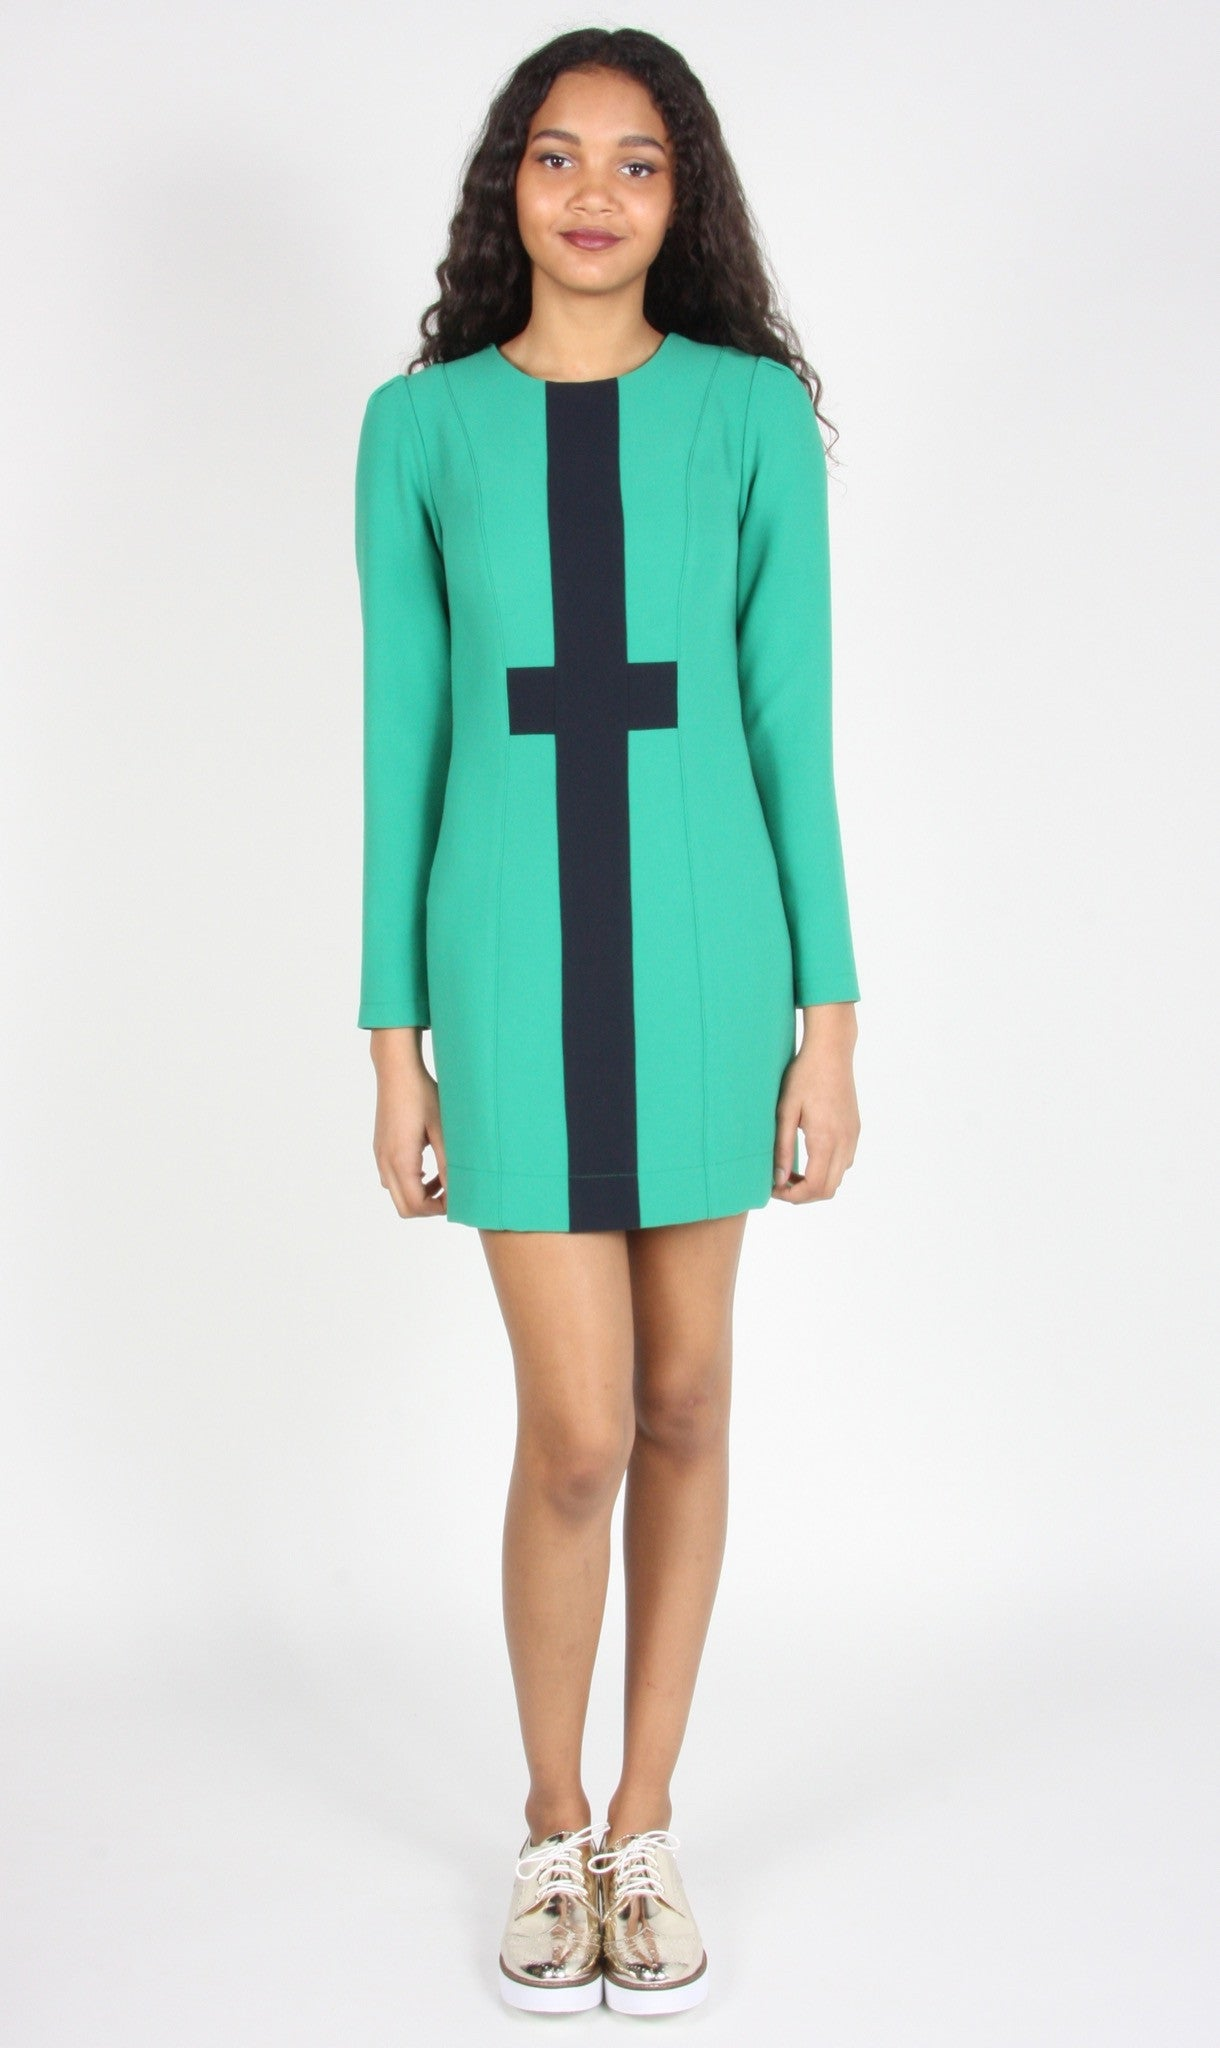 Caracara Dress - Sea Green